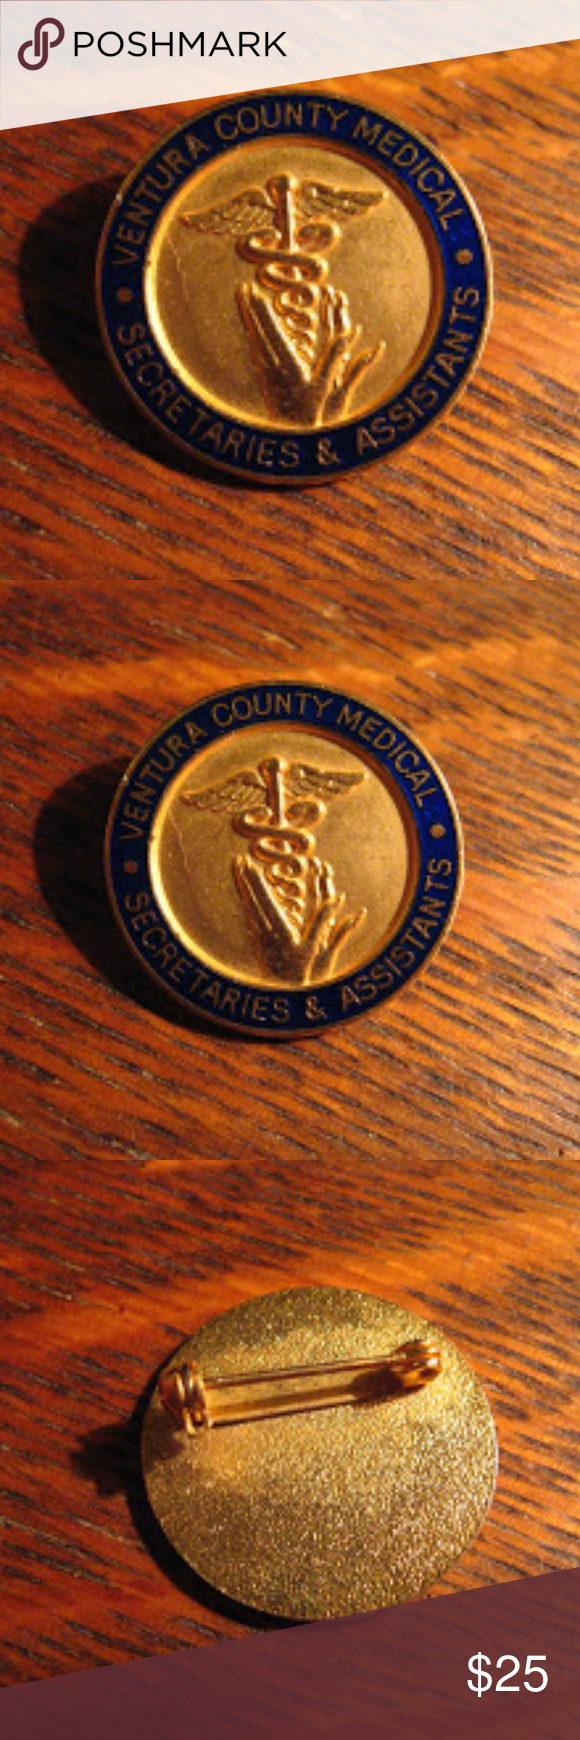 Vintage 1997 Promise Keepers Spiritual Lapel Pin The Making Of A Godly Man